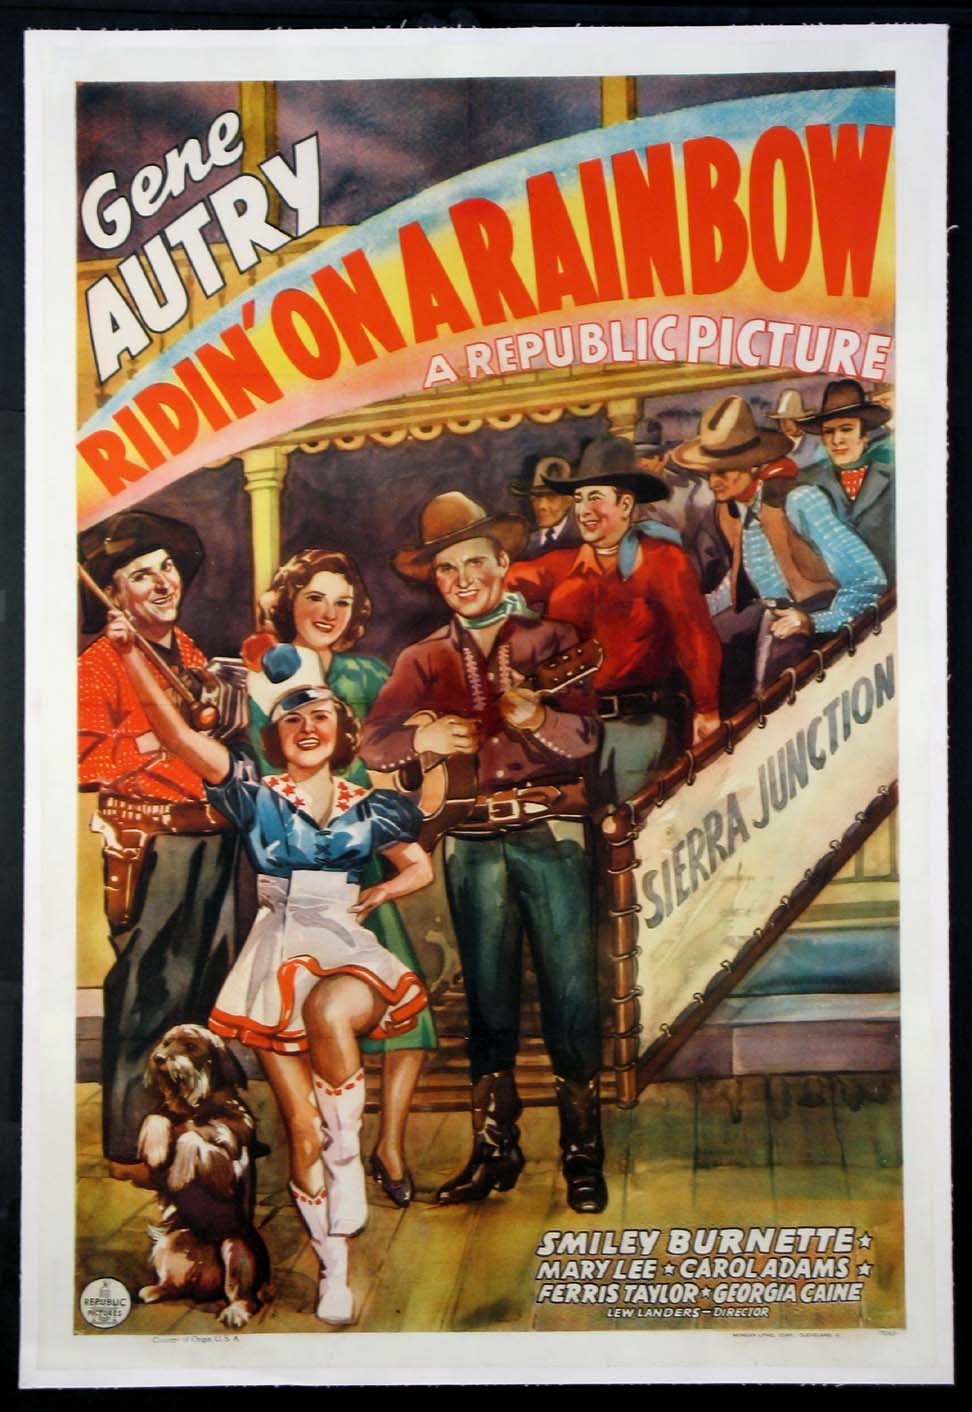 RIDIN' ON A RAINBOW @ FilmPosters.com